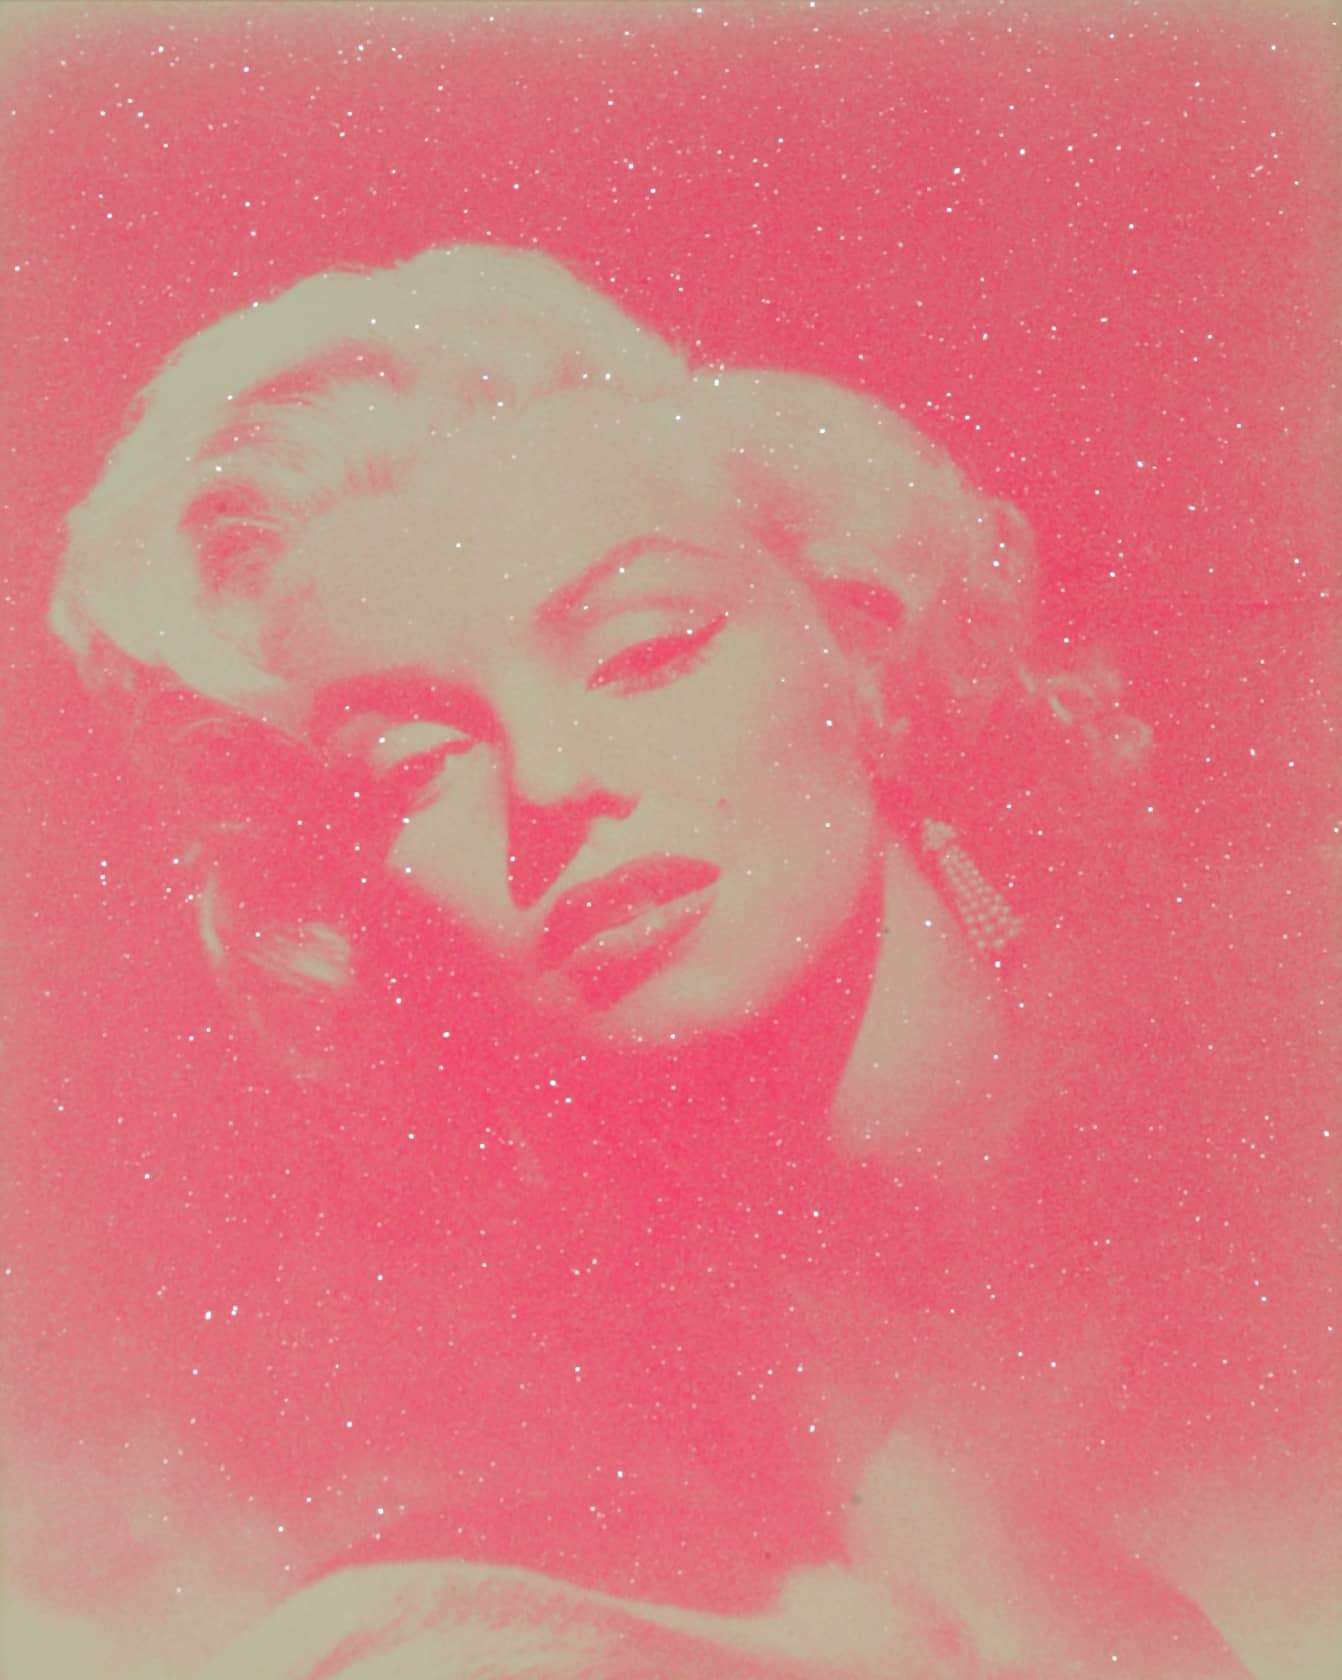 Russell Young, Marilyn Glamour - Pink and White, 2010